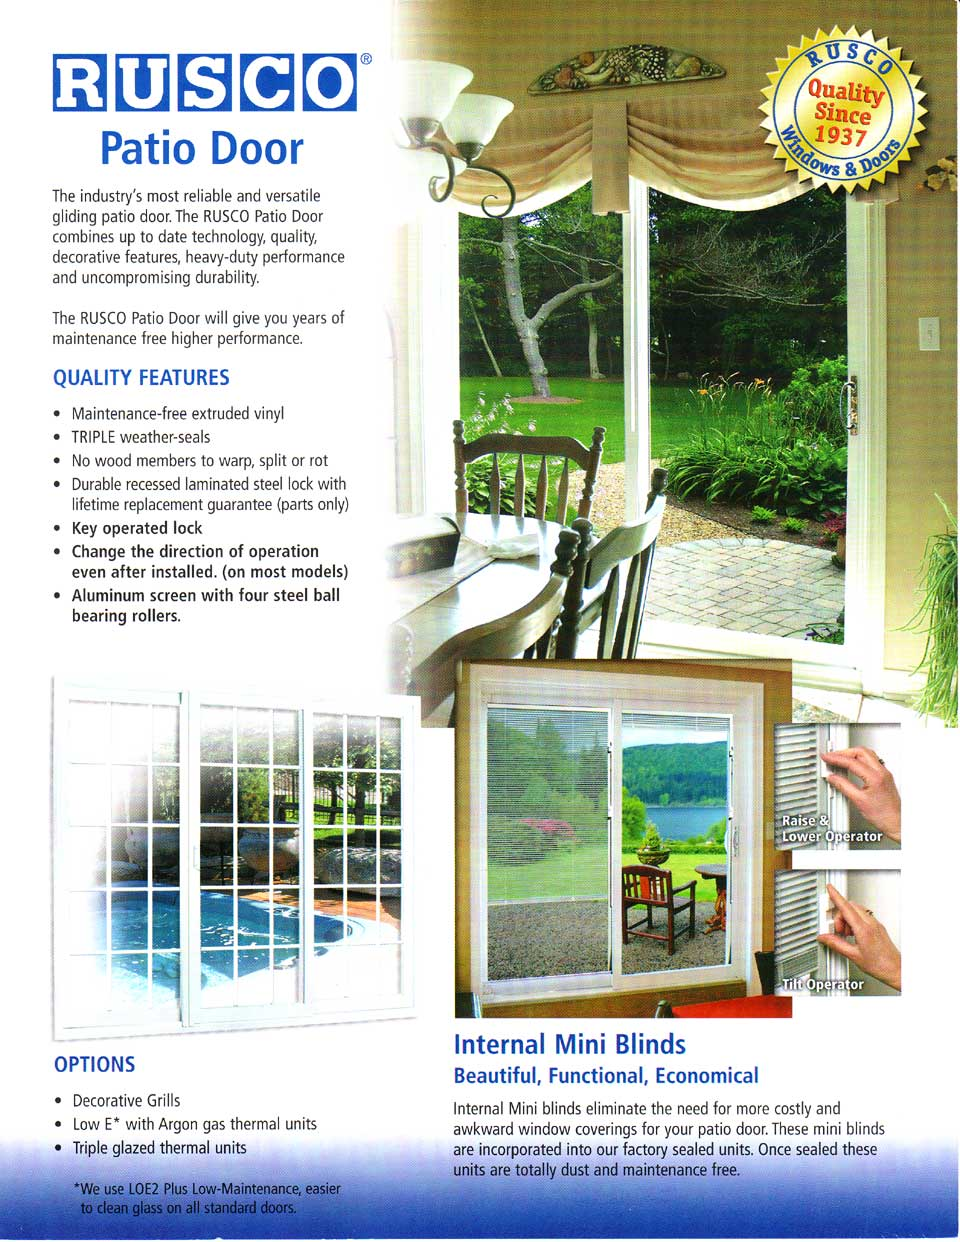 Rusco patio door